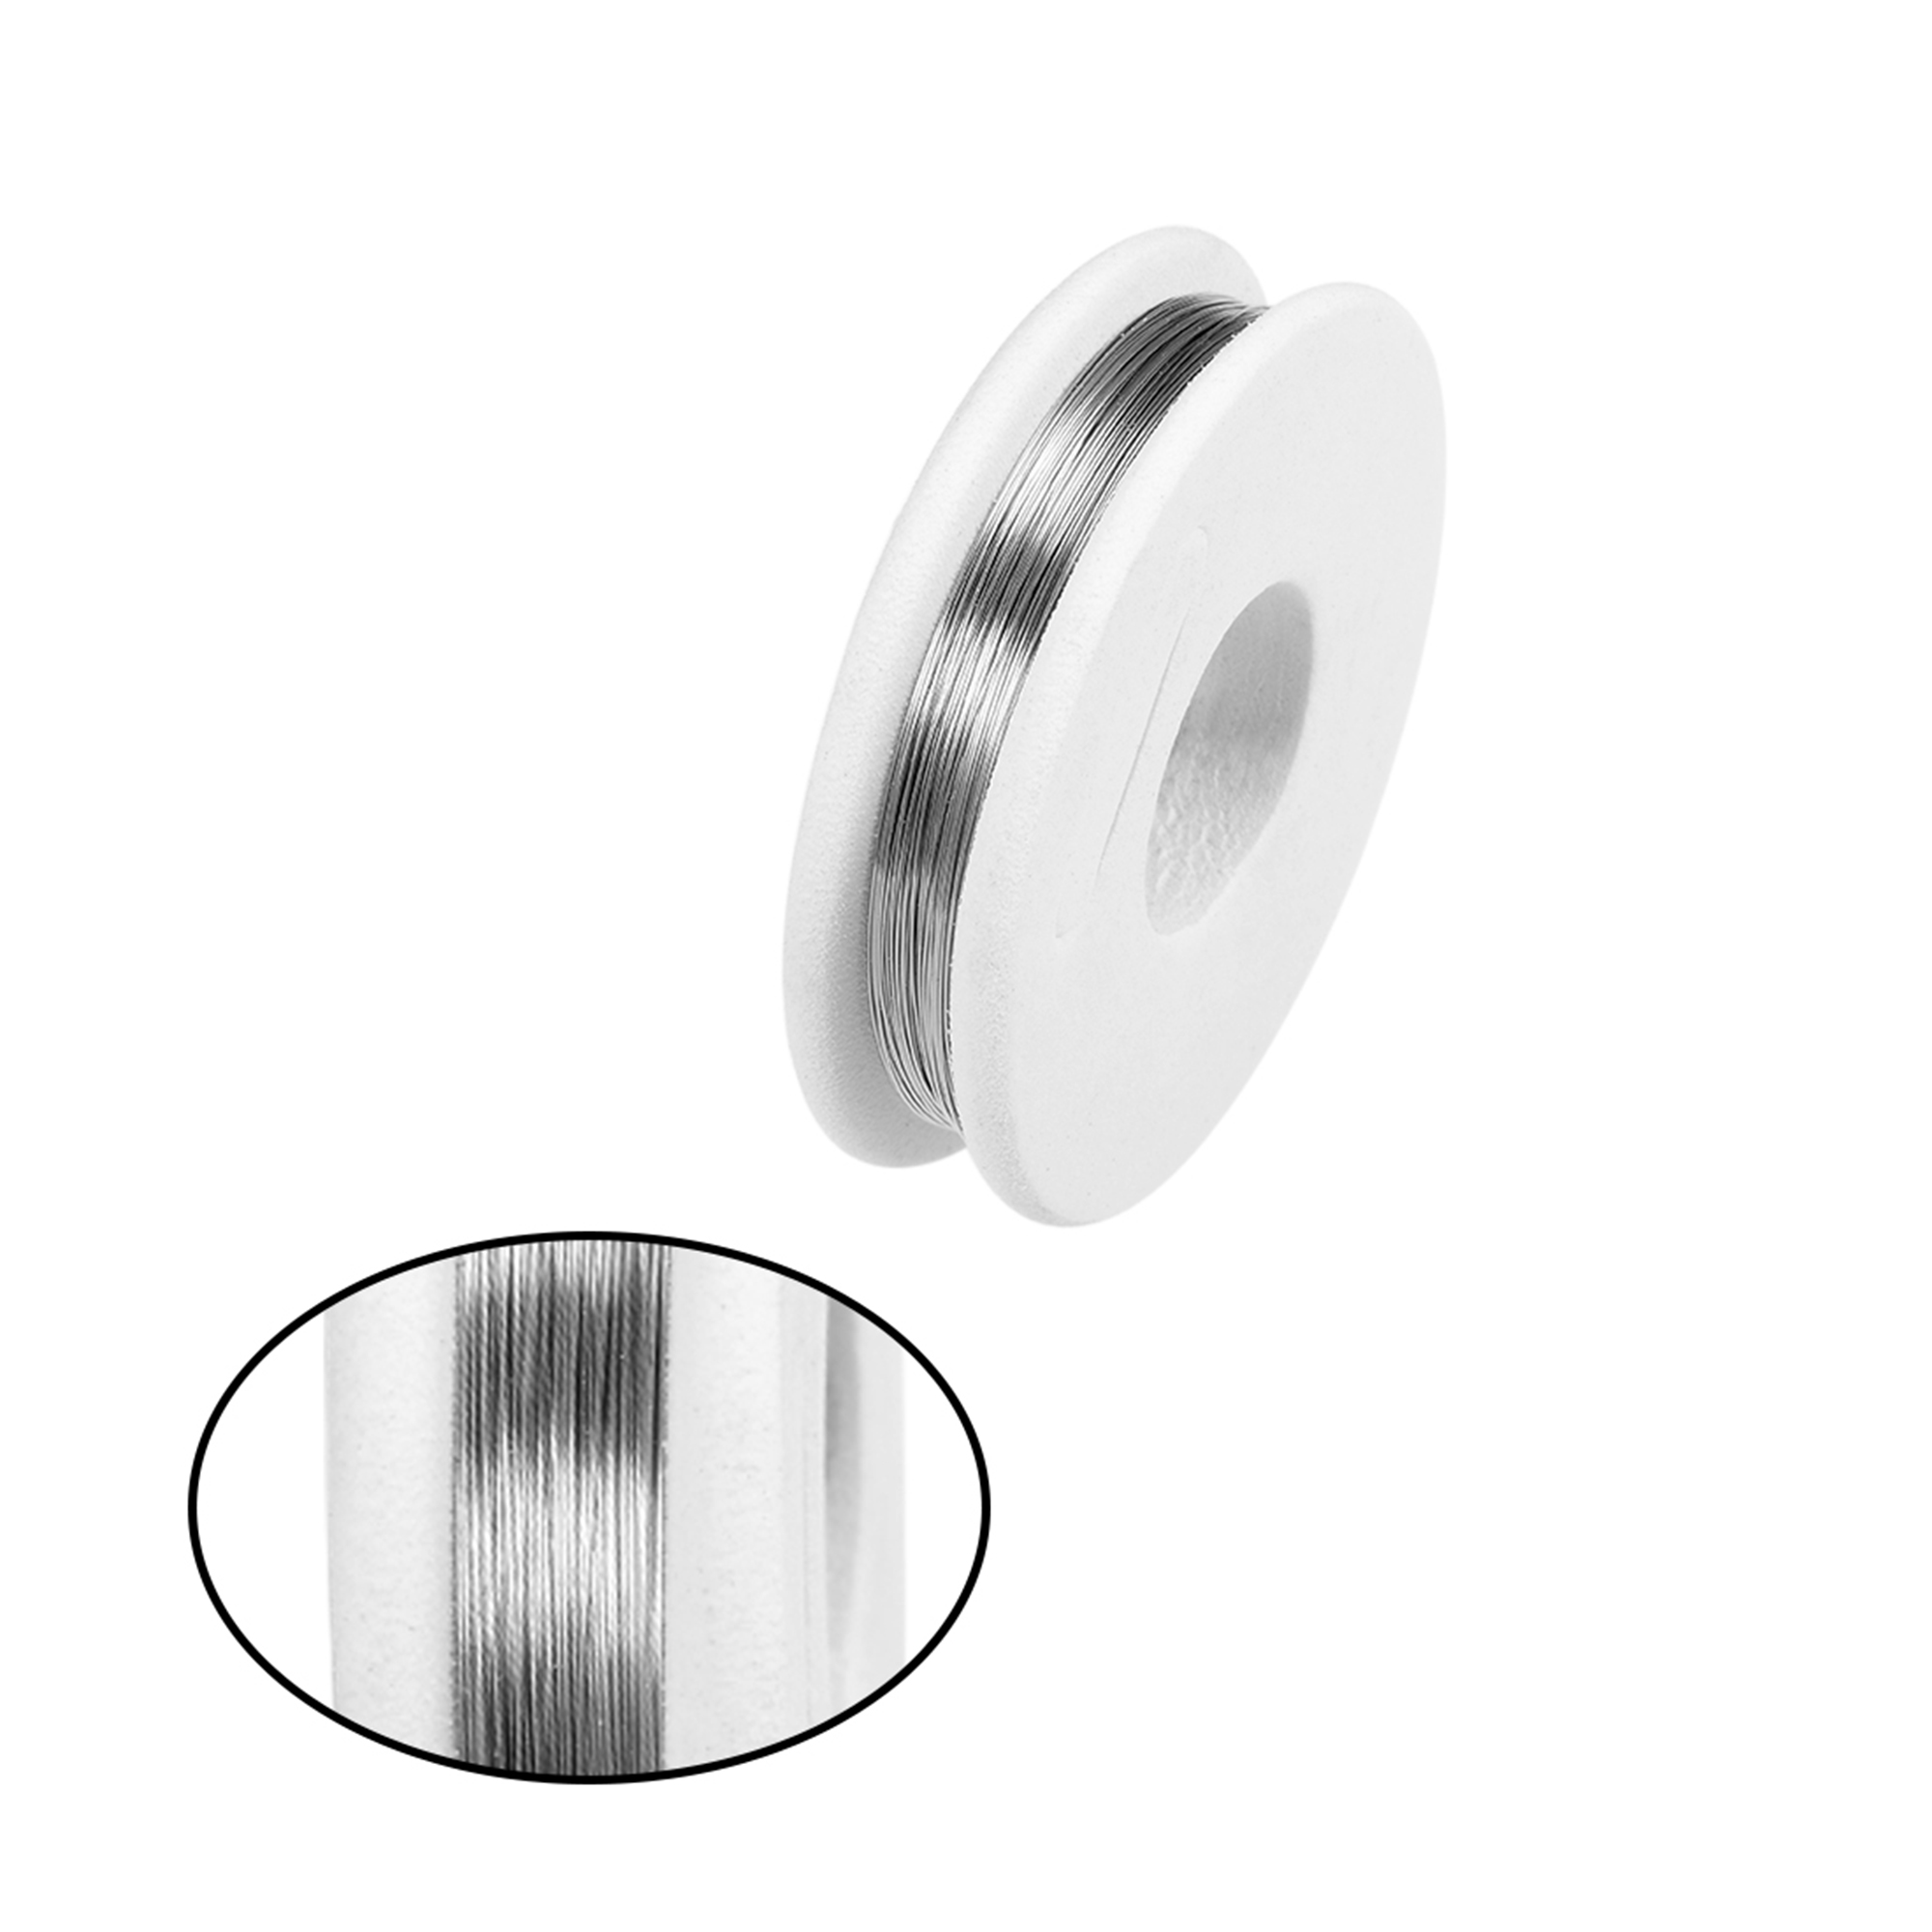 0.15mm 35AWG Heating Resistor Wire Nichrome Resistance Wires for Heating Elements 65.6ft - image 2 de 4